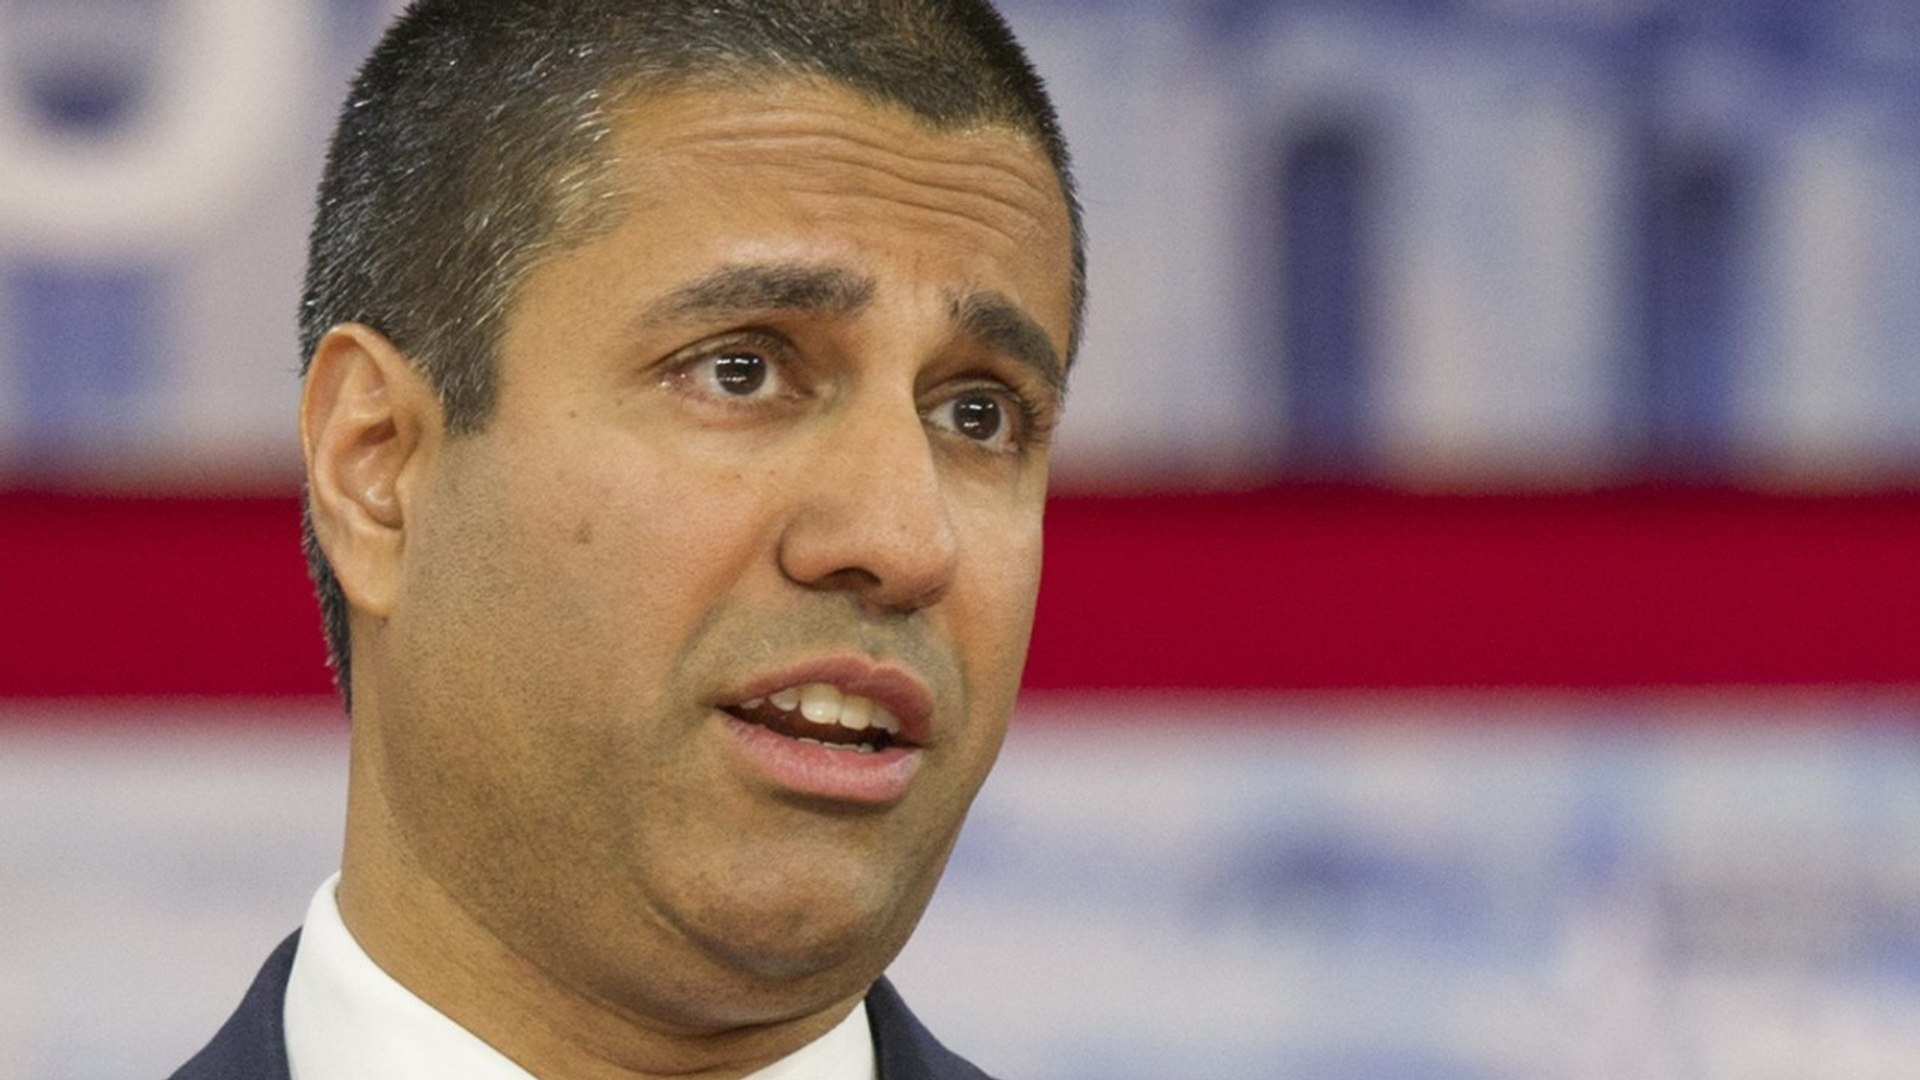 FCC Chair Appears In Net Neutrality-Mocking Video With 'Pizzagate' Theories